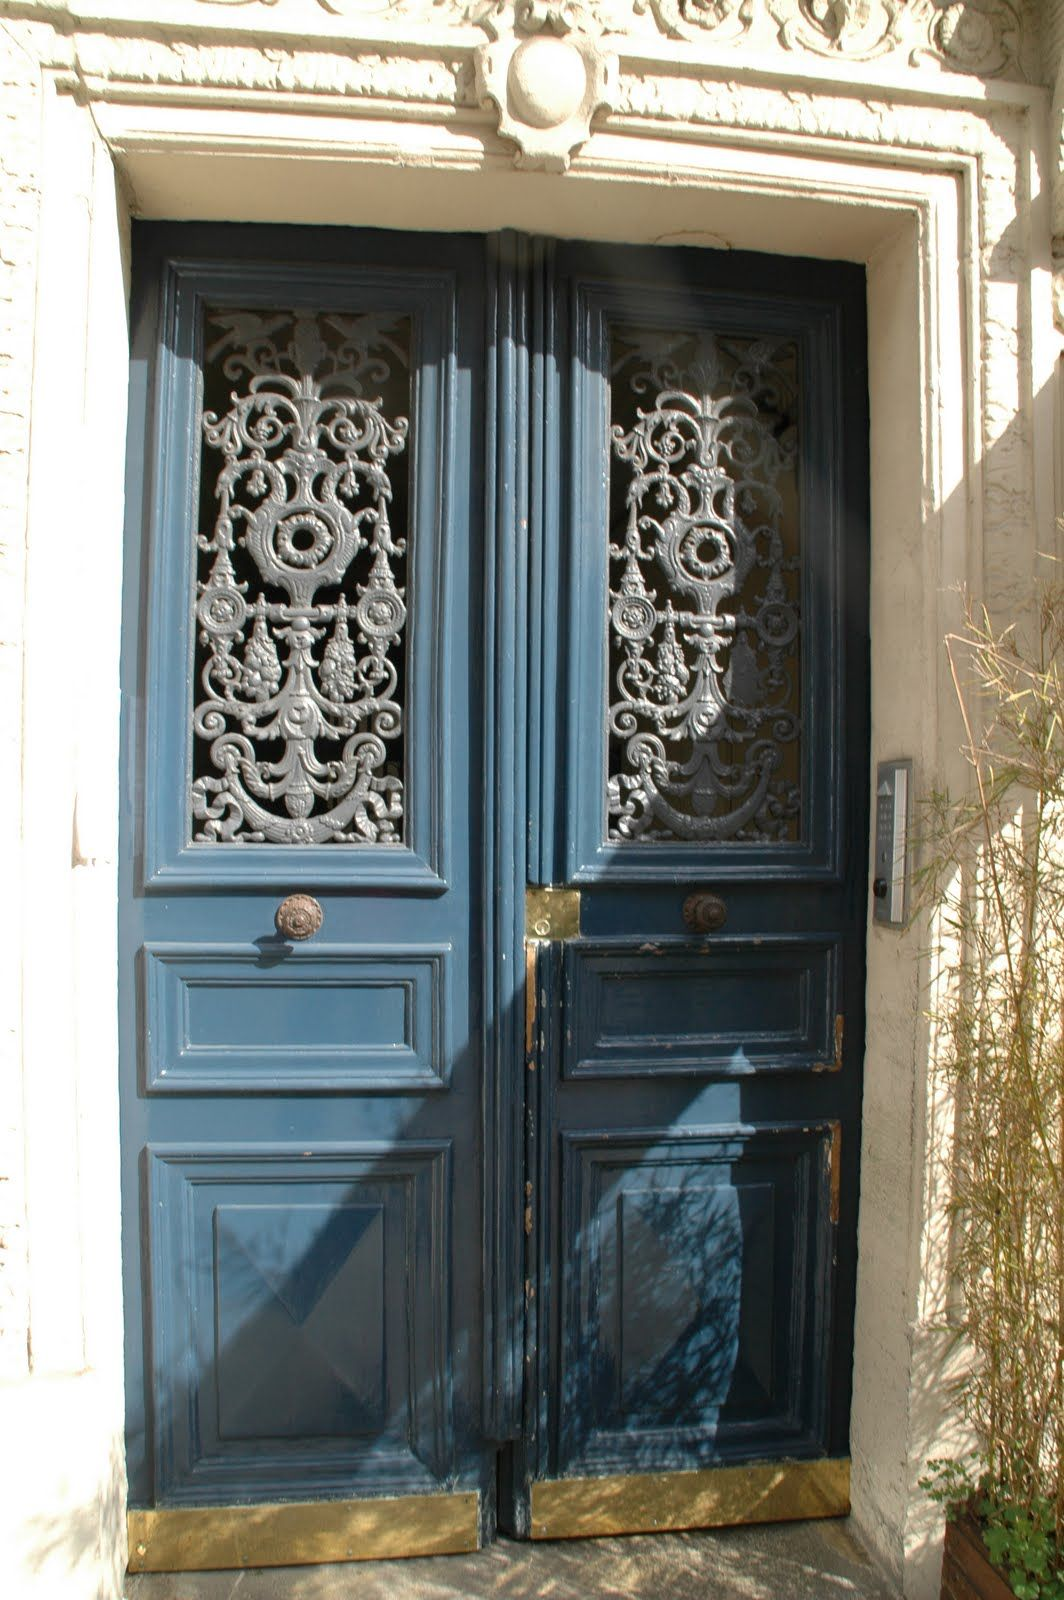 3 the beauty of this rustic French door | Windows & Doors & Gates ...